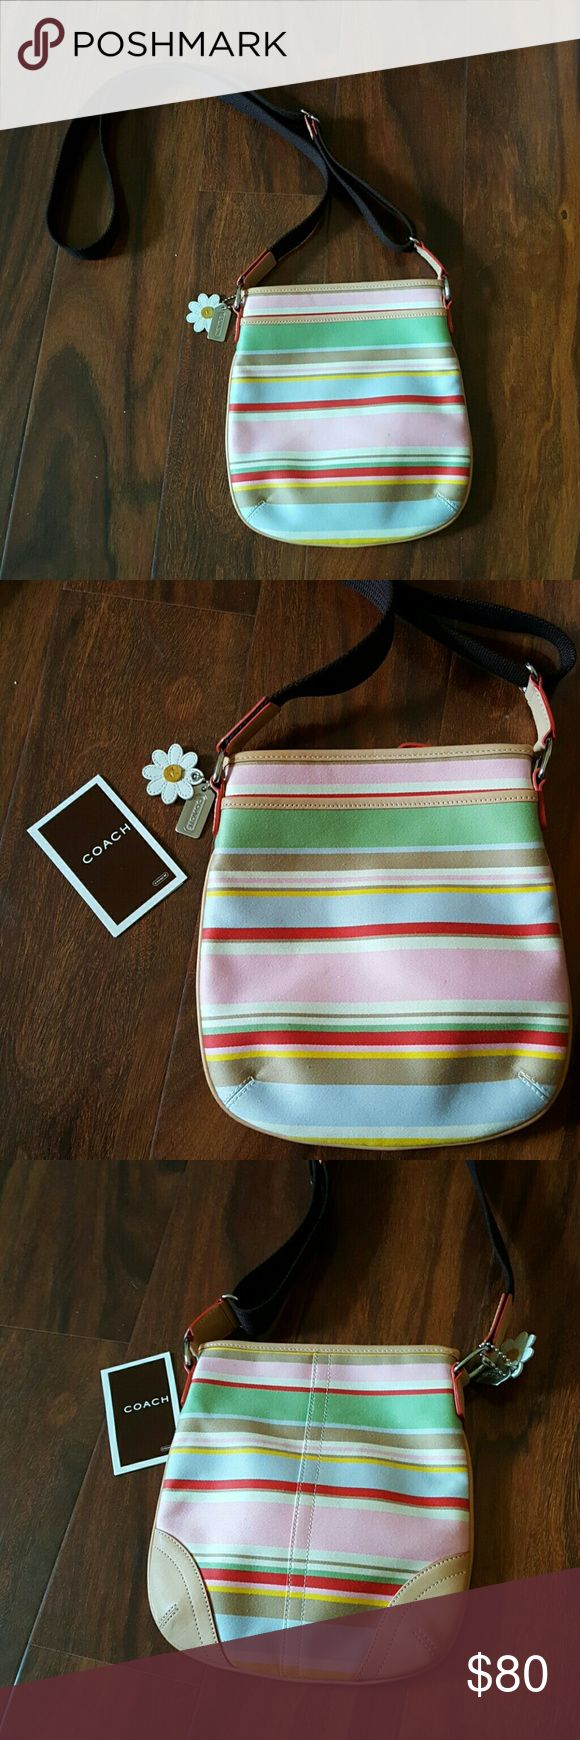 Coach purse satin stripe cross body  handbag Pastel stripe satin  authentic COACH cross body purse, it have front pocket. It closes with a zipper. Never use, no tags.Only care instructions. Coach Bags Crossbody Bags